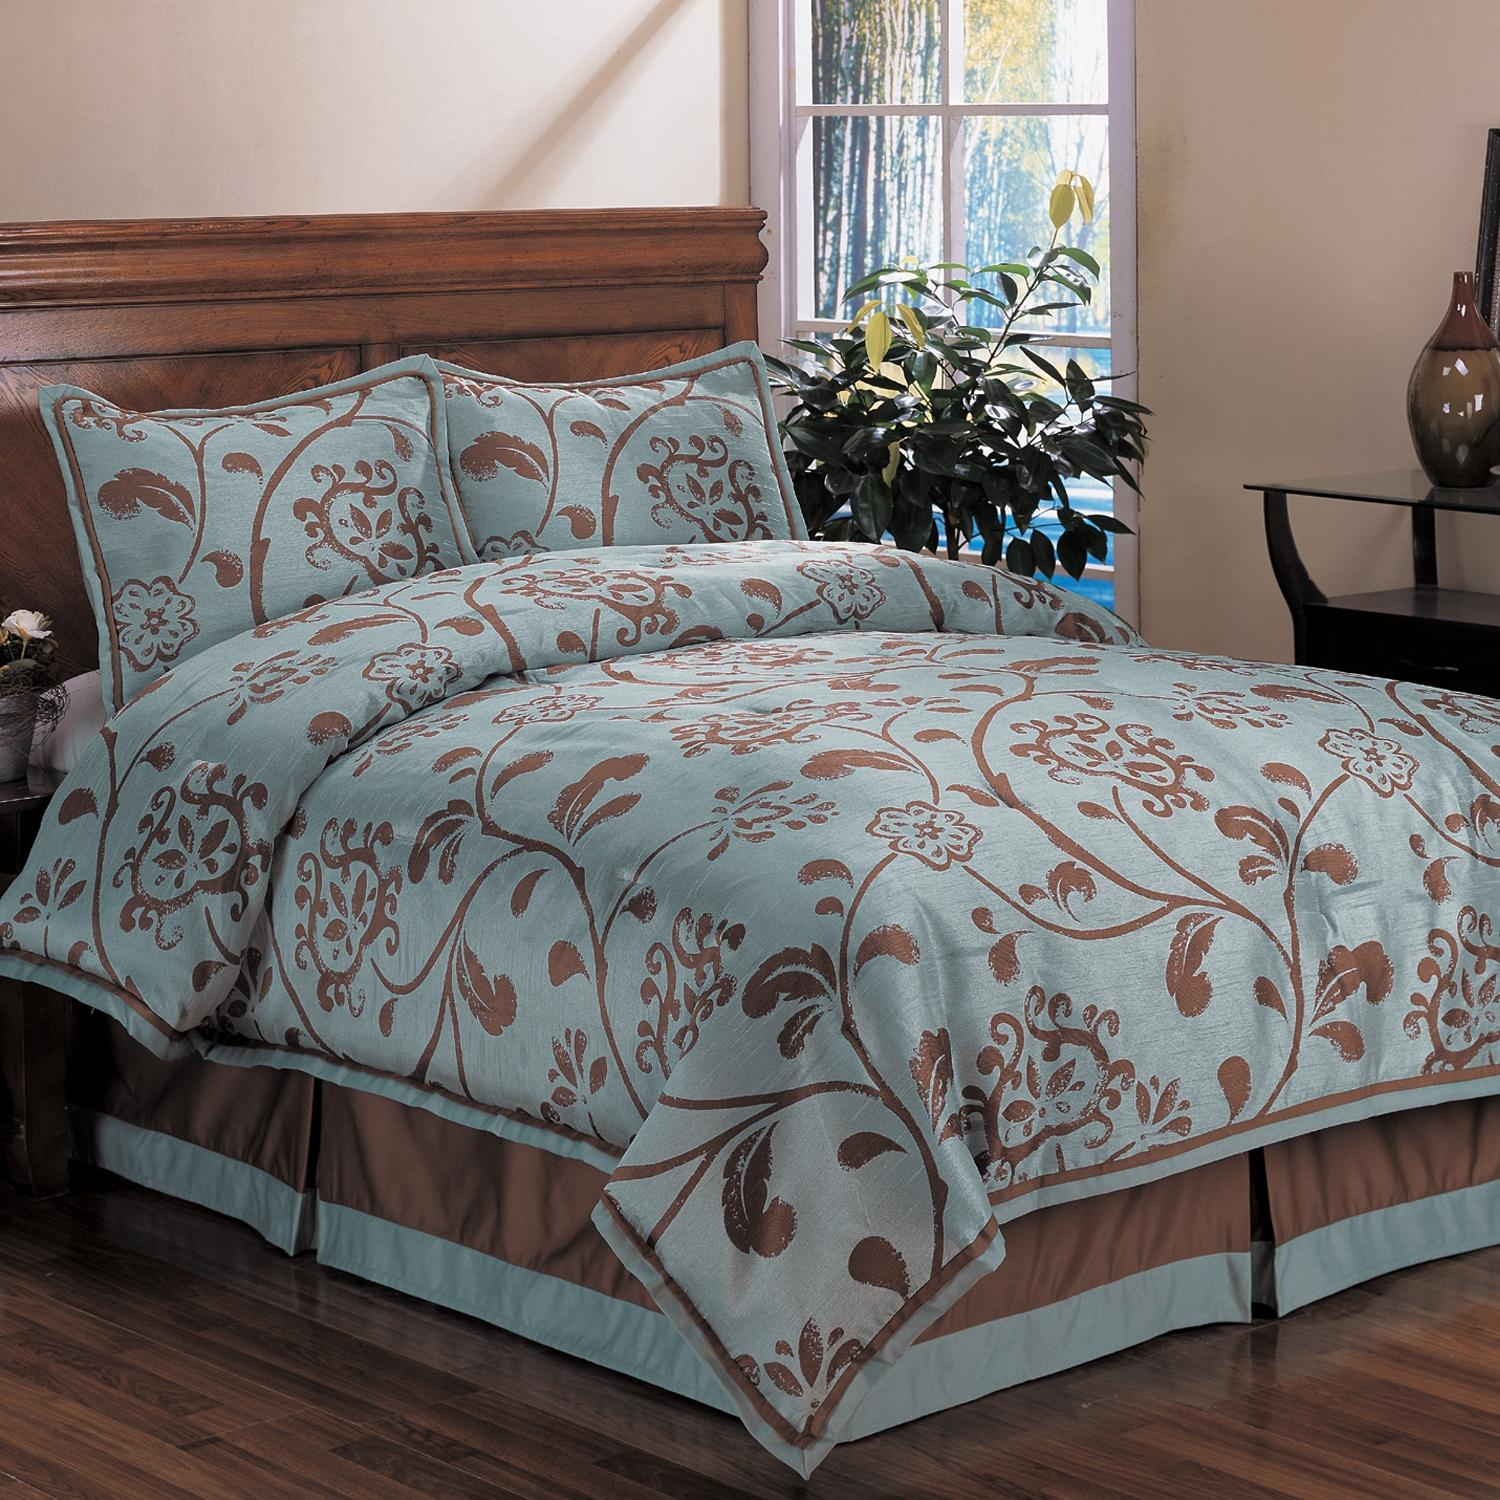 Queen Size Bedding